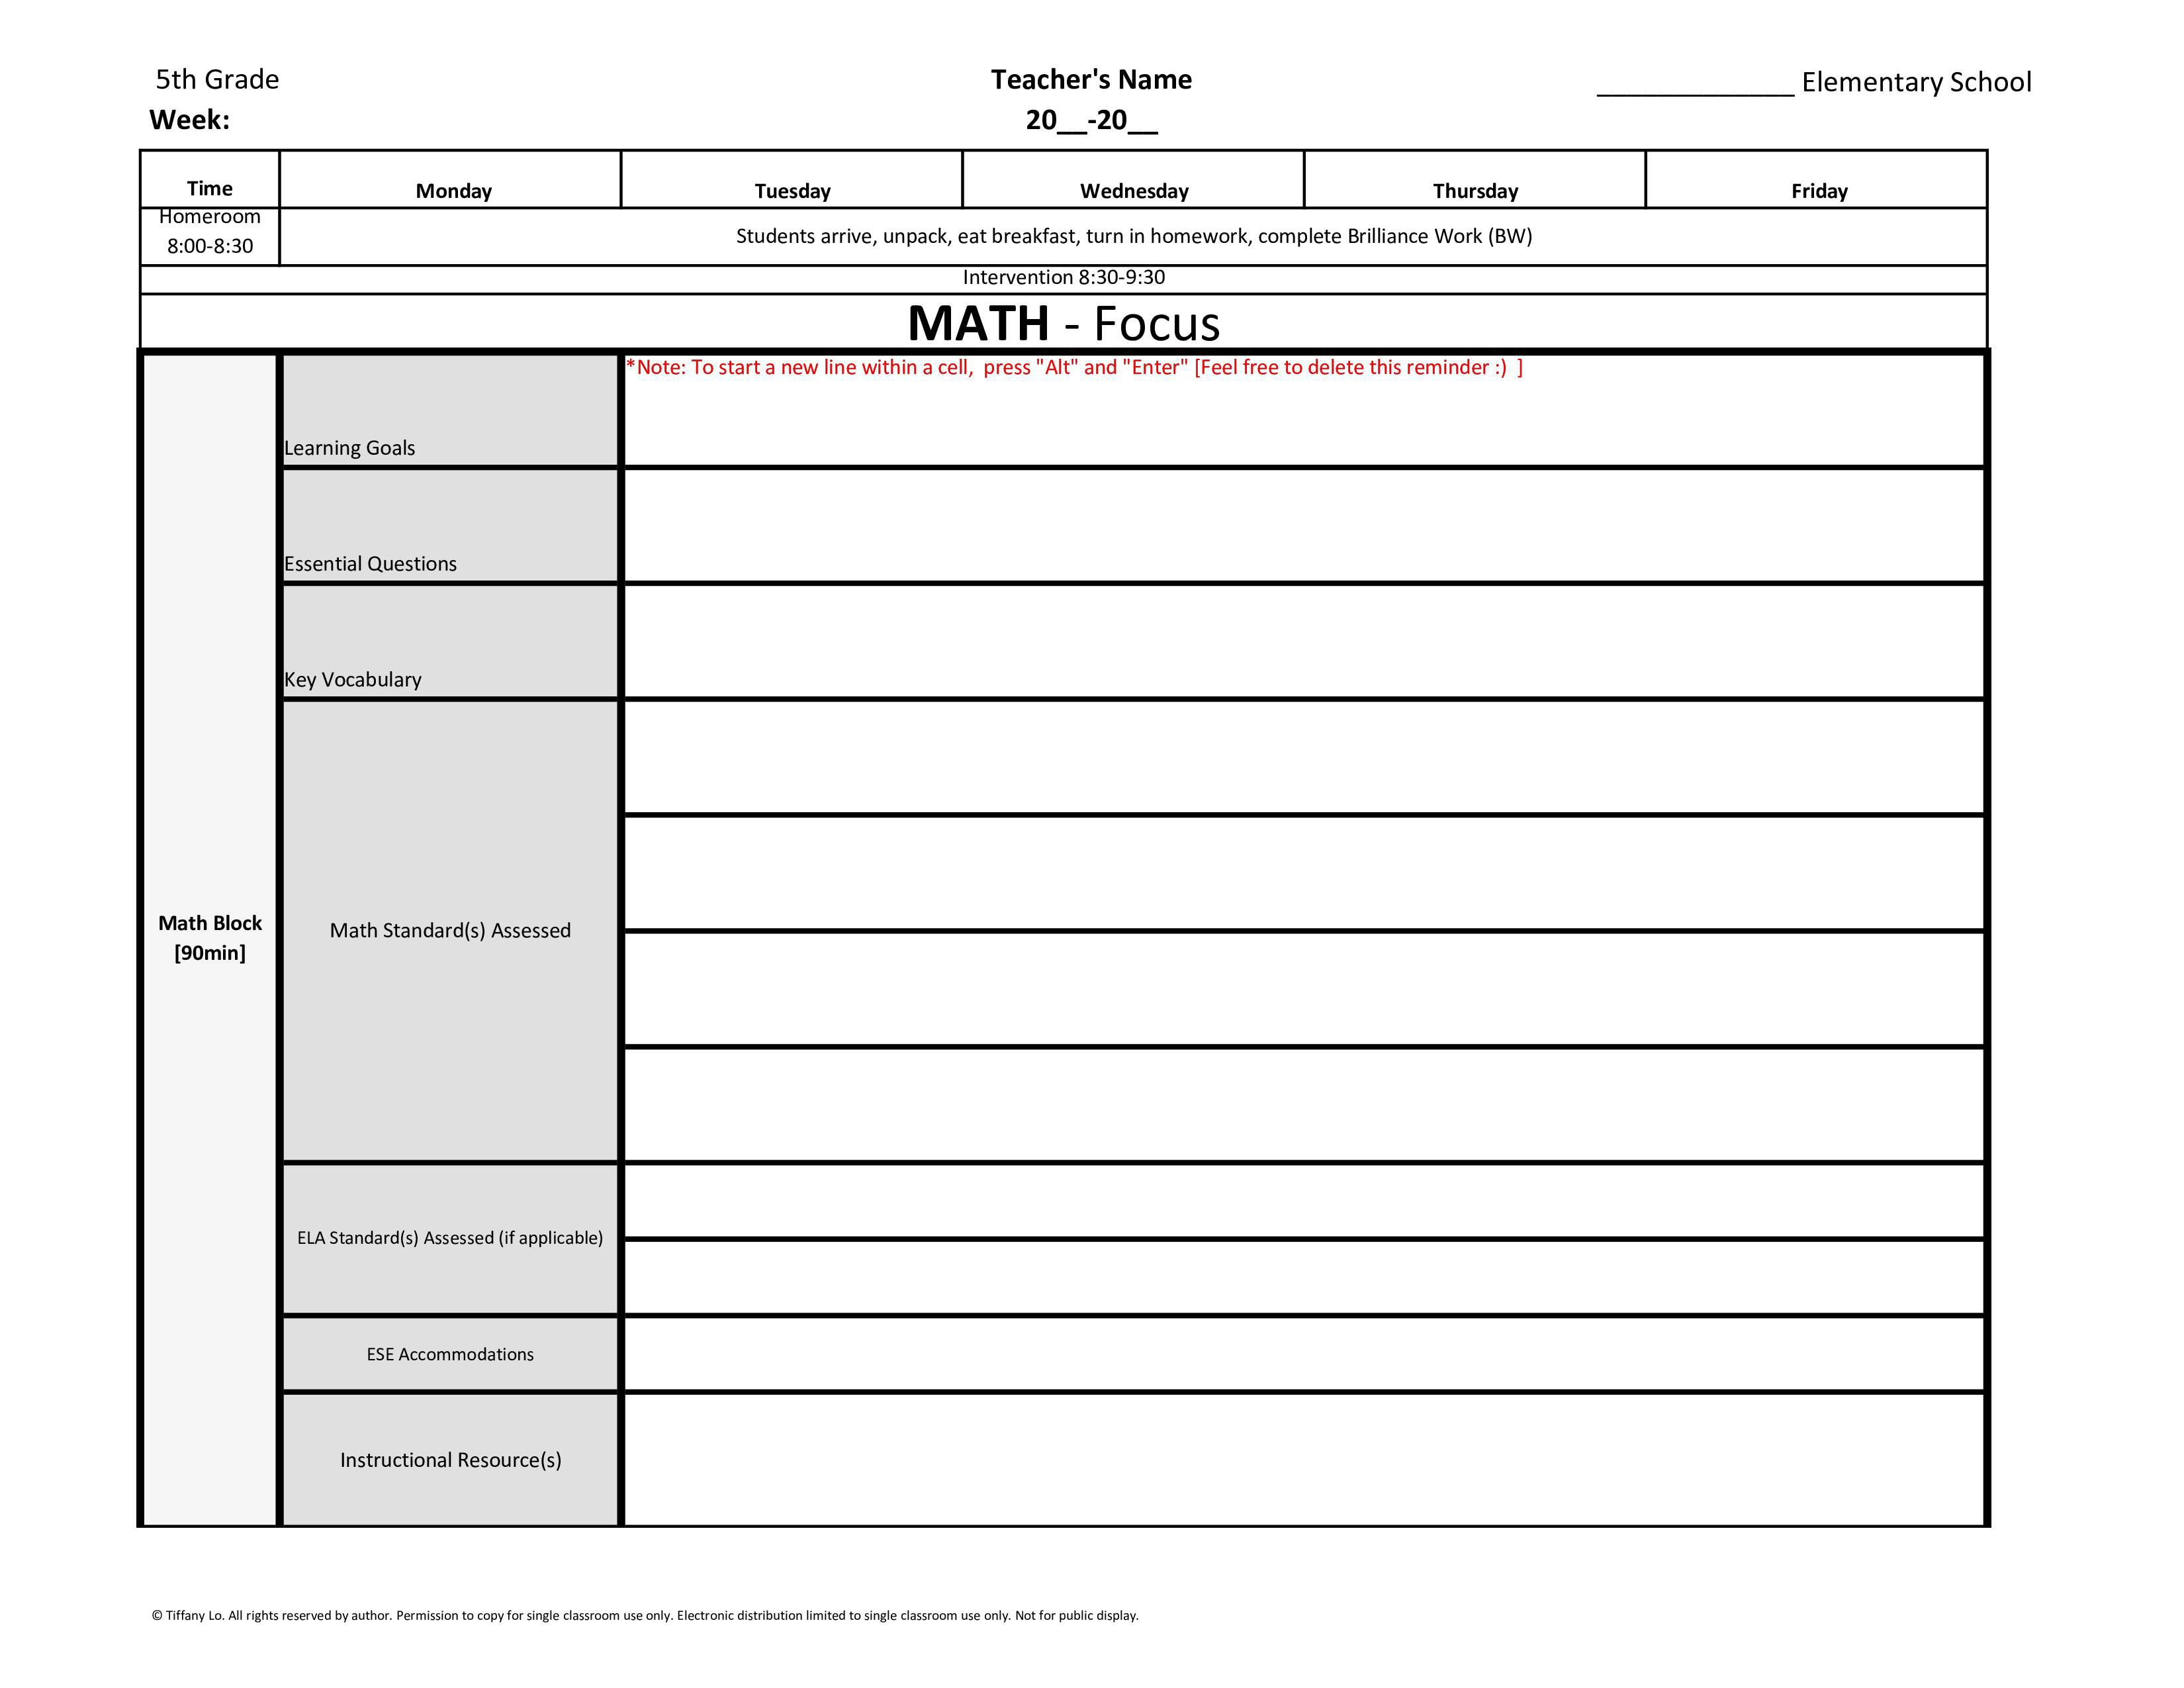 000 Unusual Template For Lesson Plan Image  Plans Pdf High School SampleFull